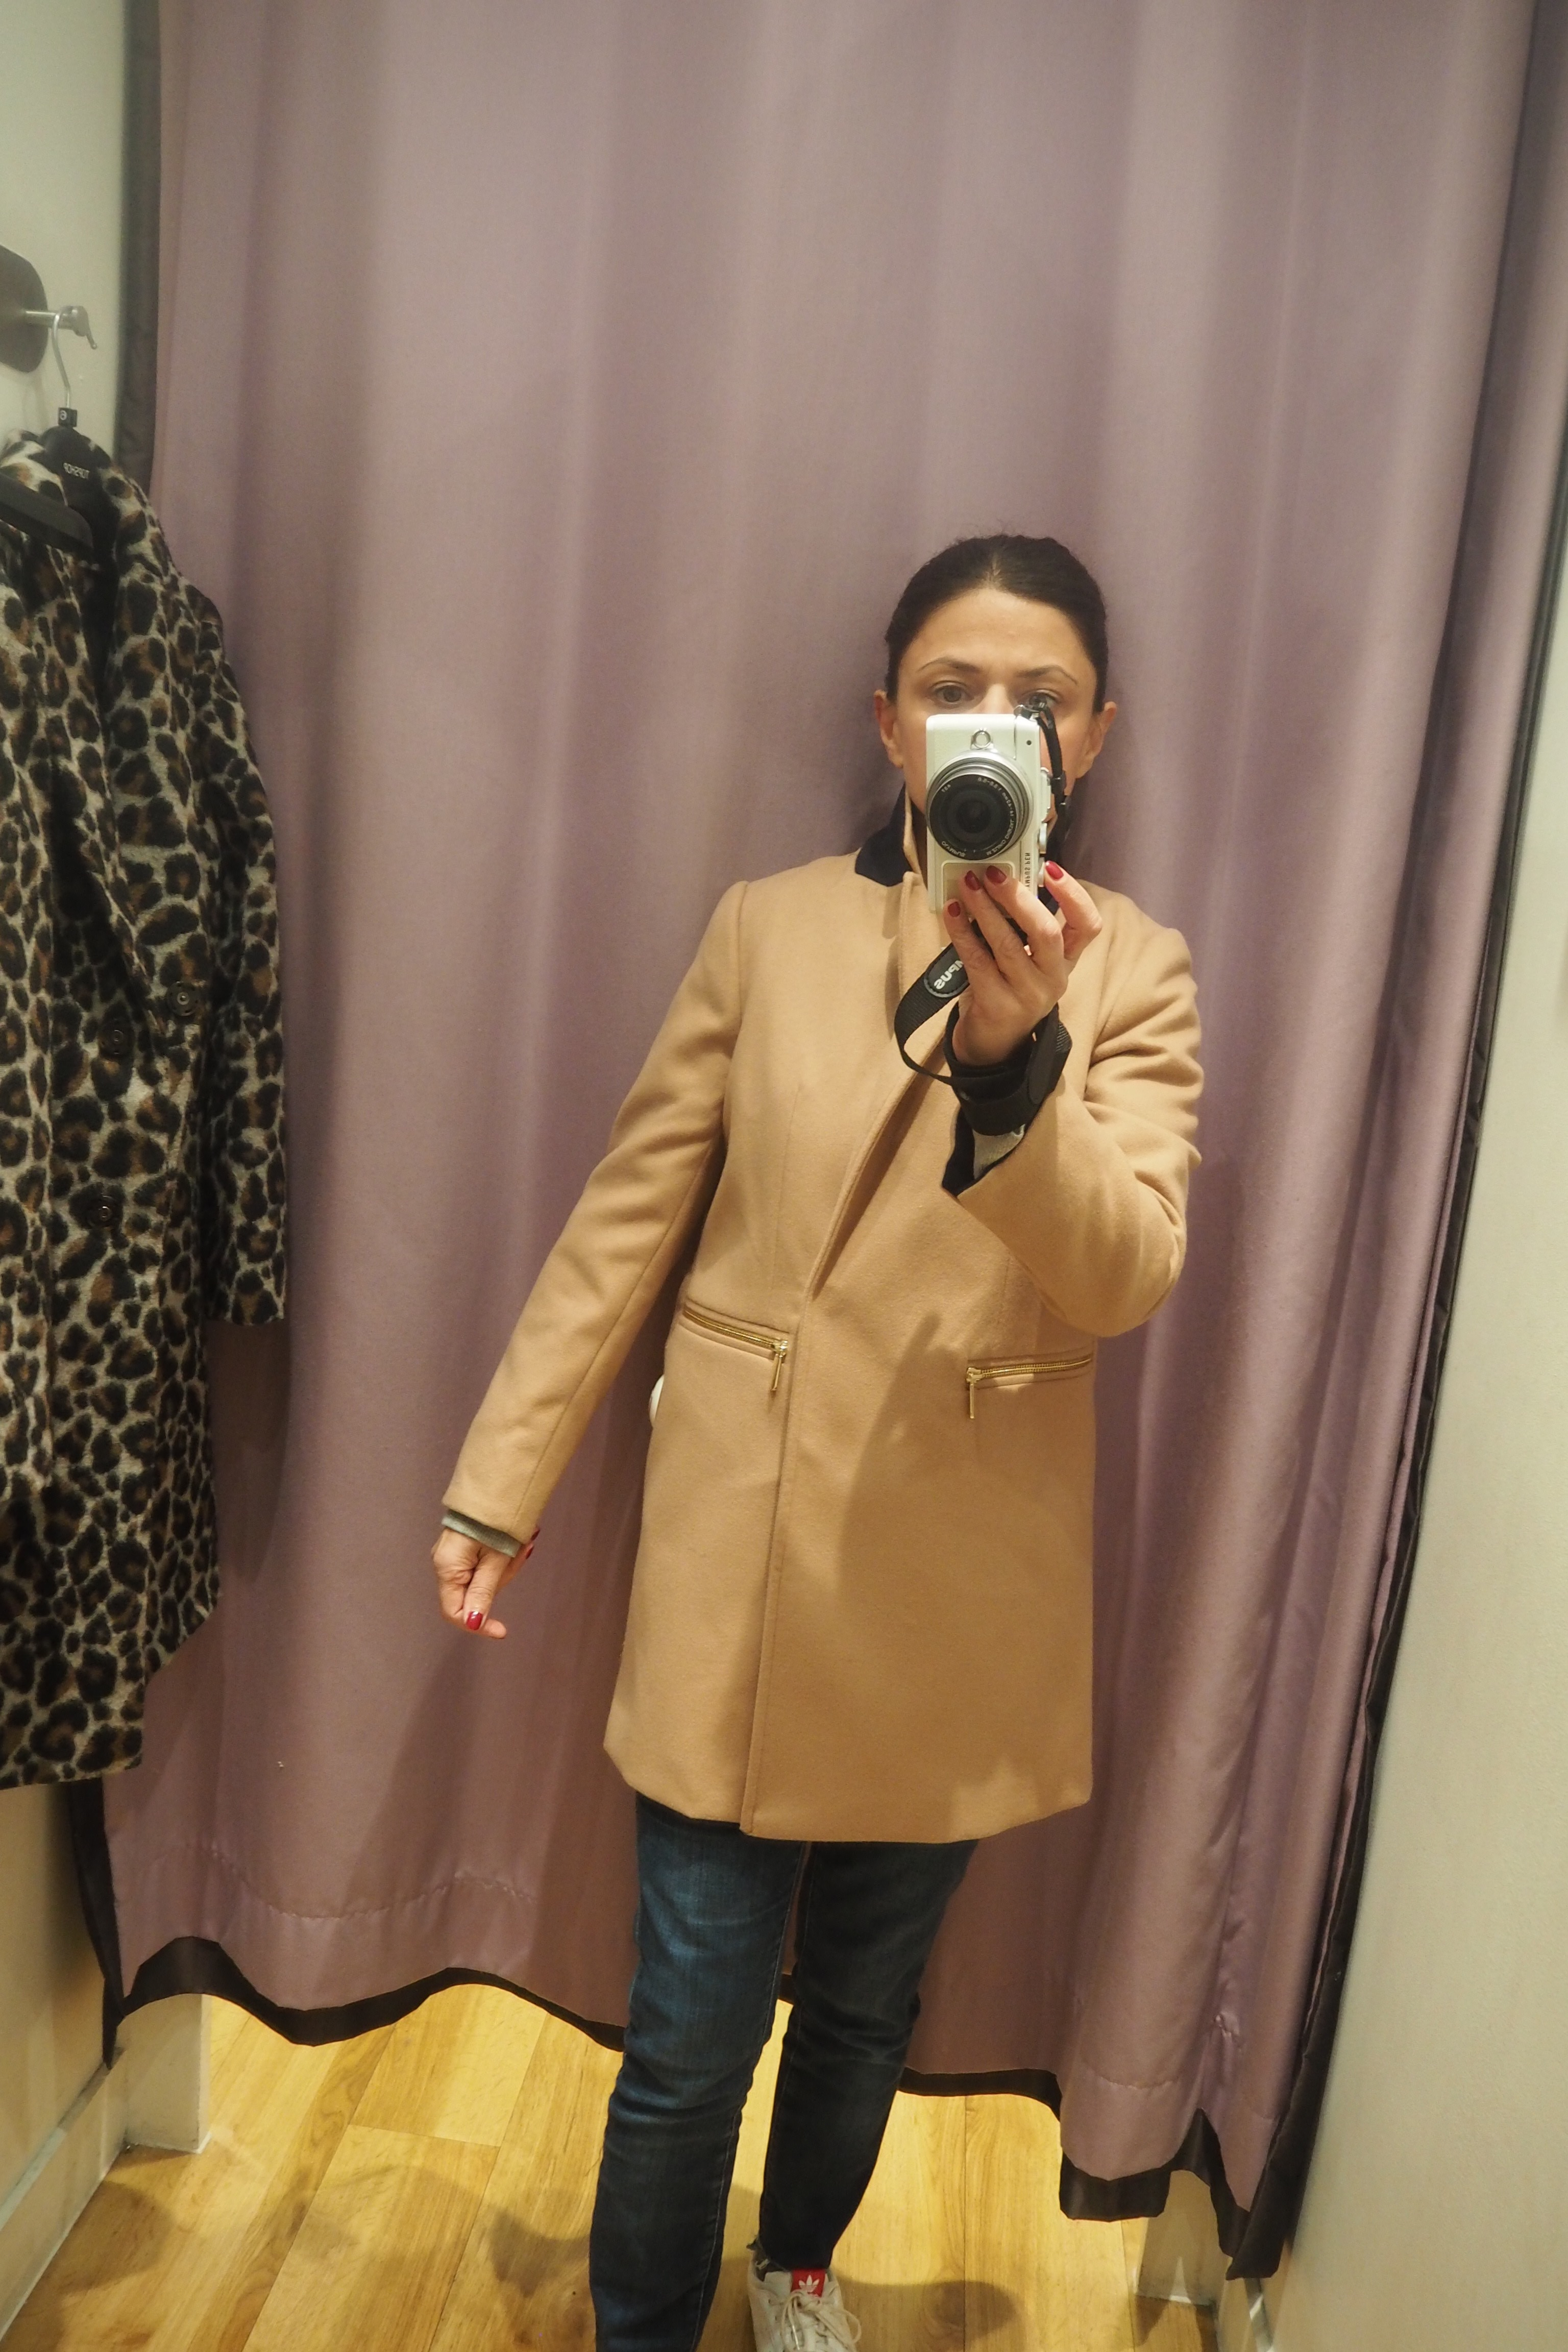 The coat was far too wide across the chest